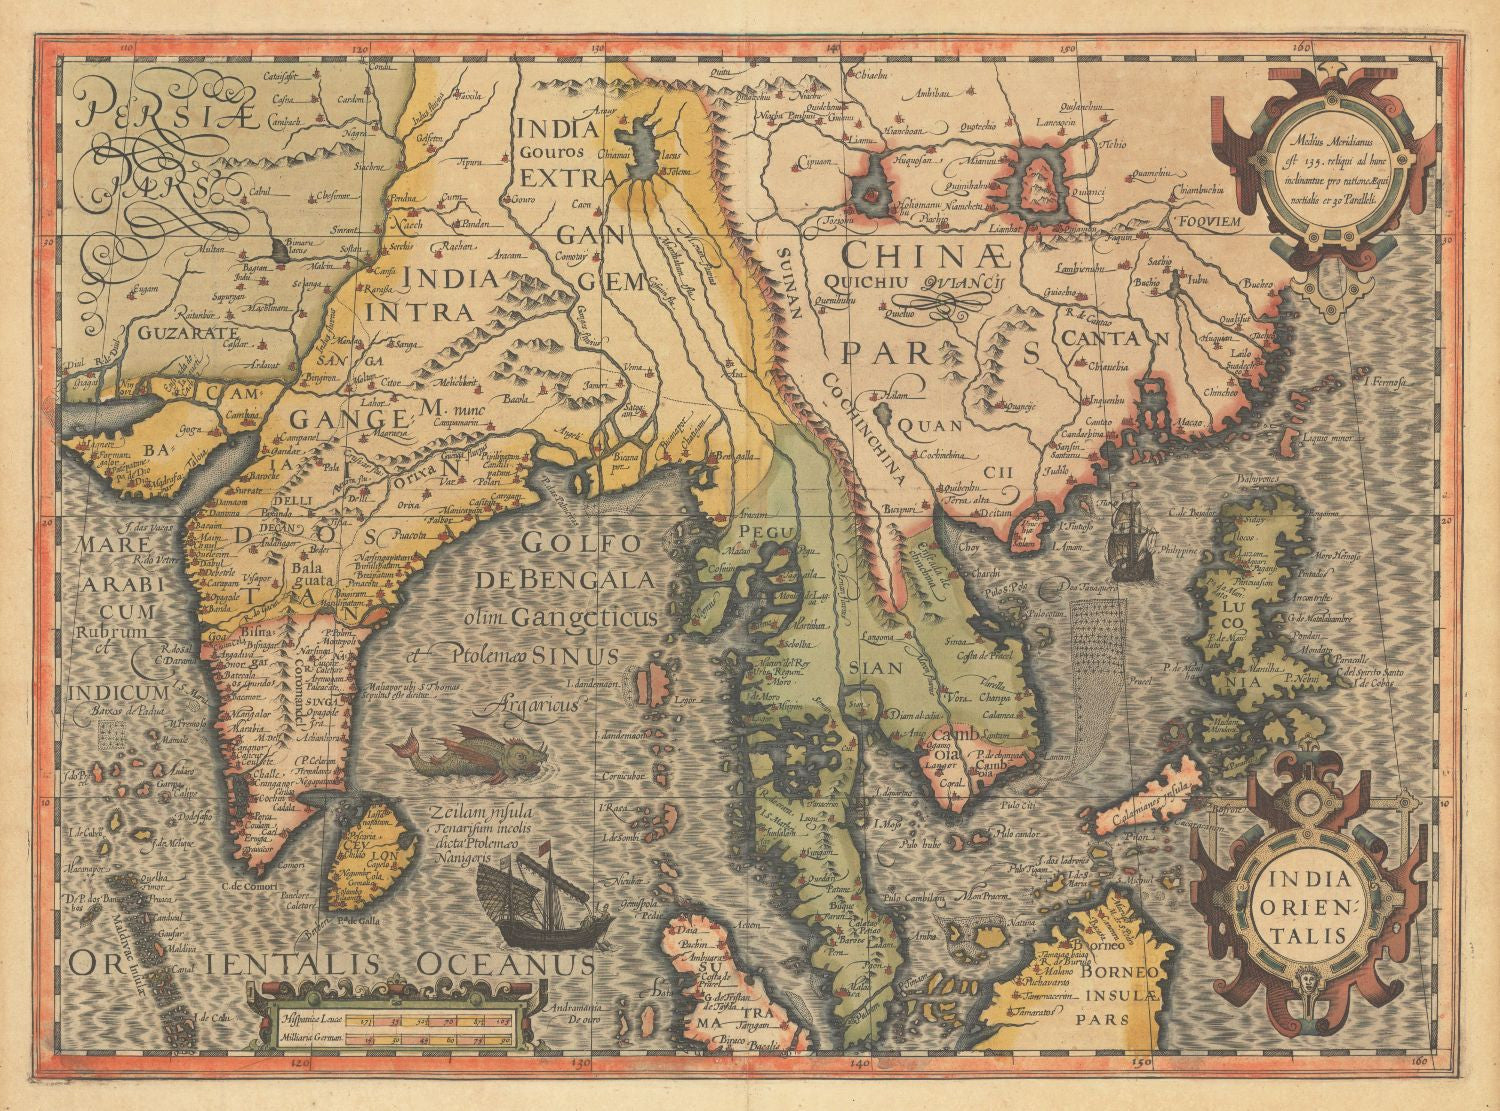 Decorative vintage world map india orientalis jodocus hondius decorative vintage world map india orientalis jodocus hondius 1606 large art prints gumiabroncs Image collections